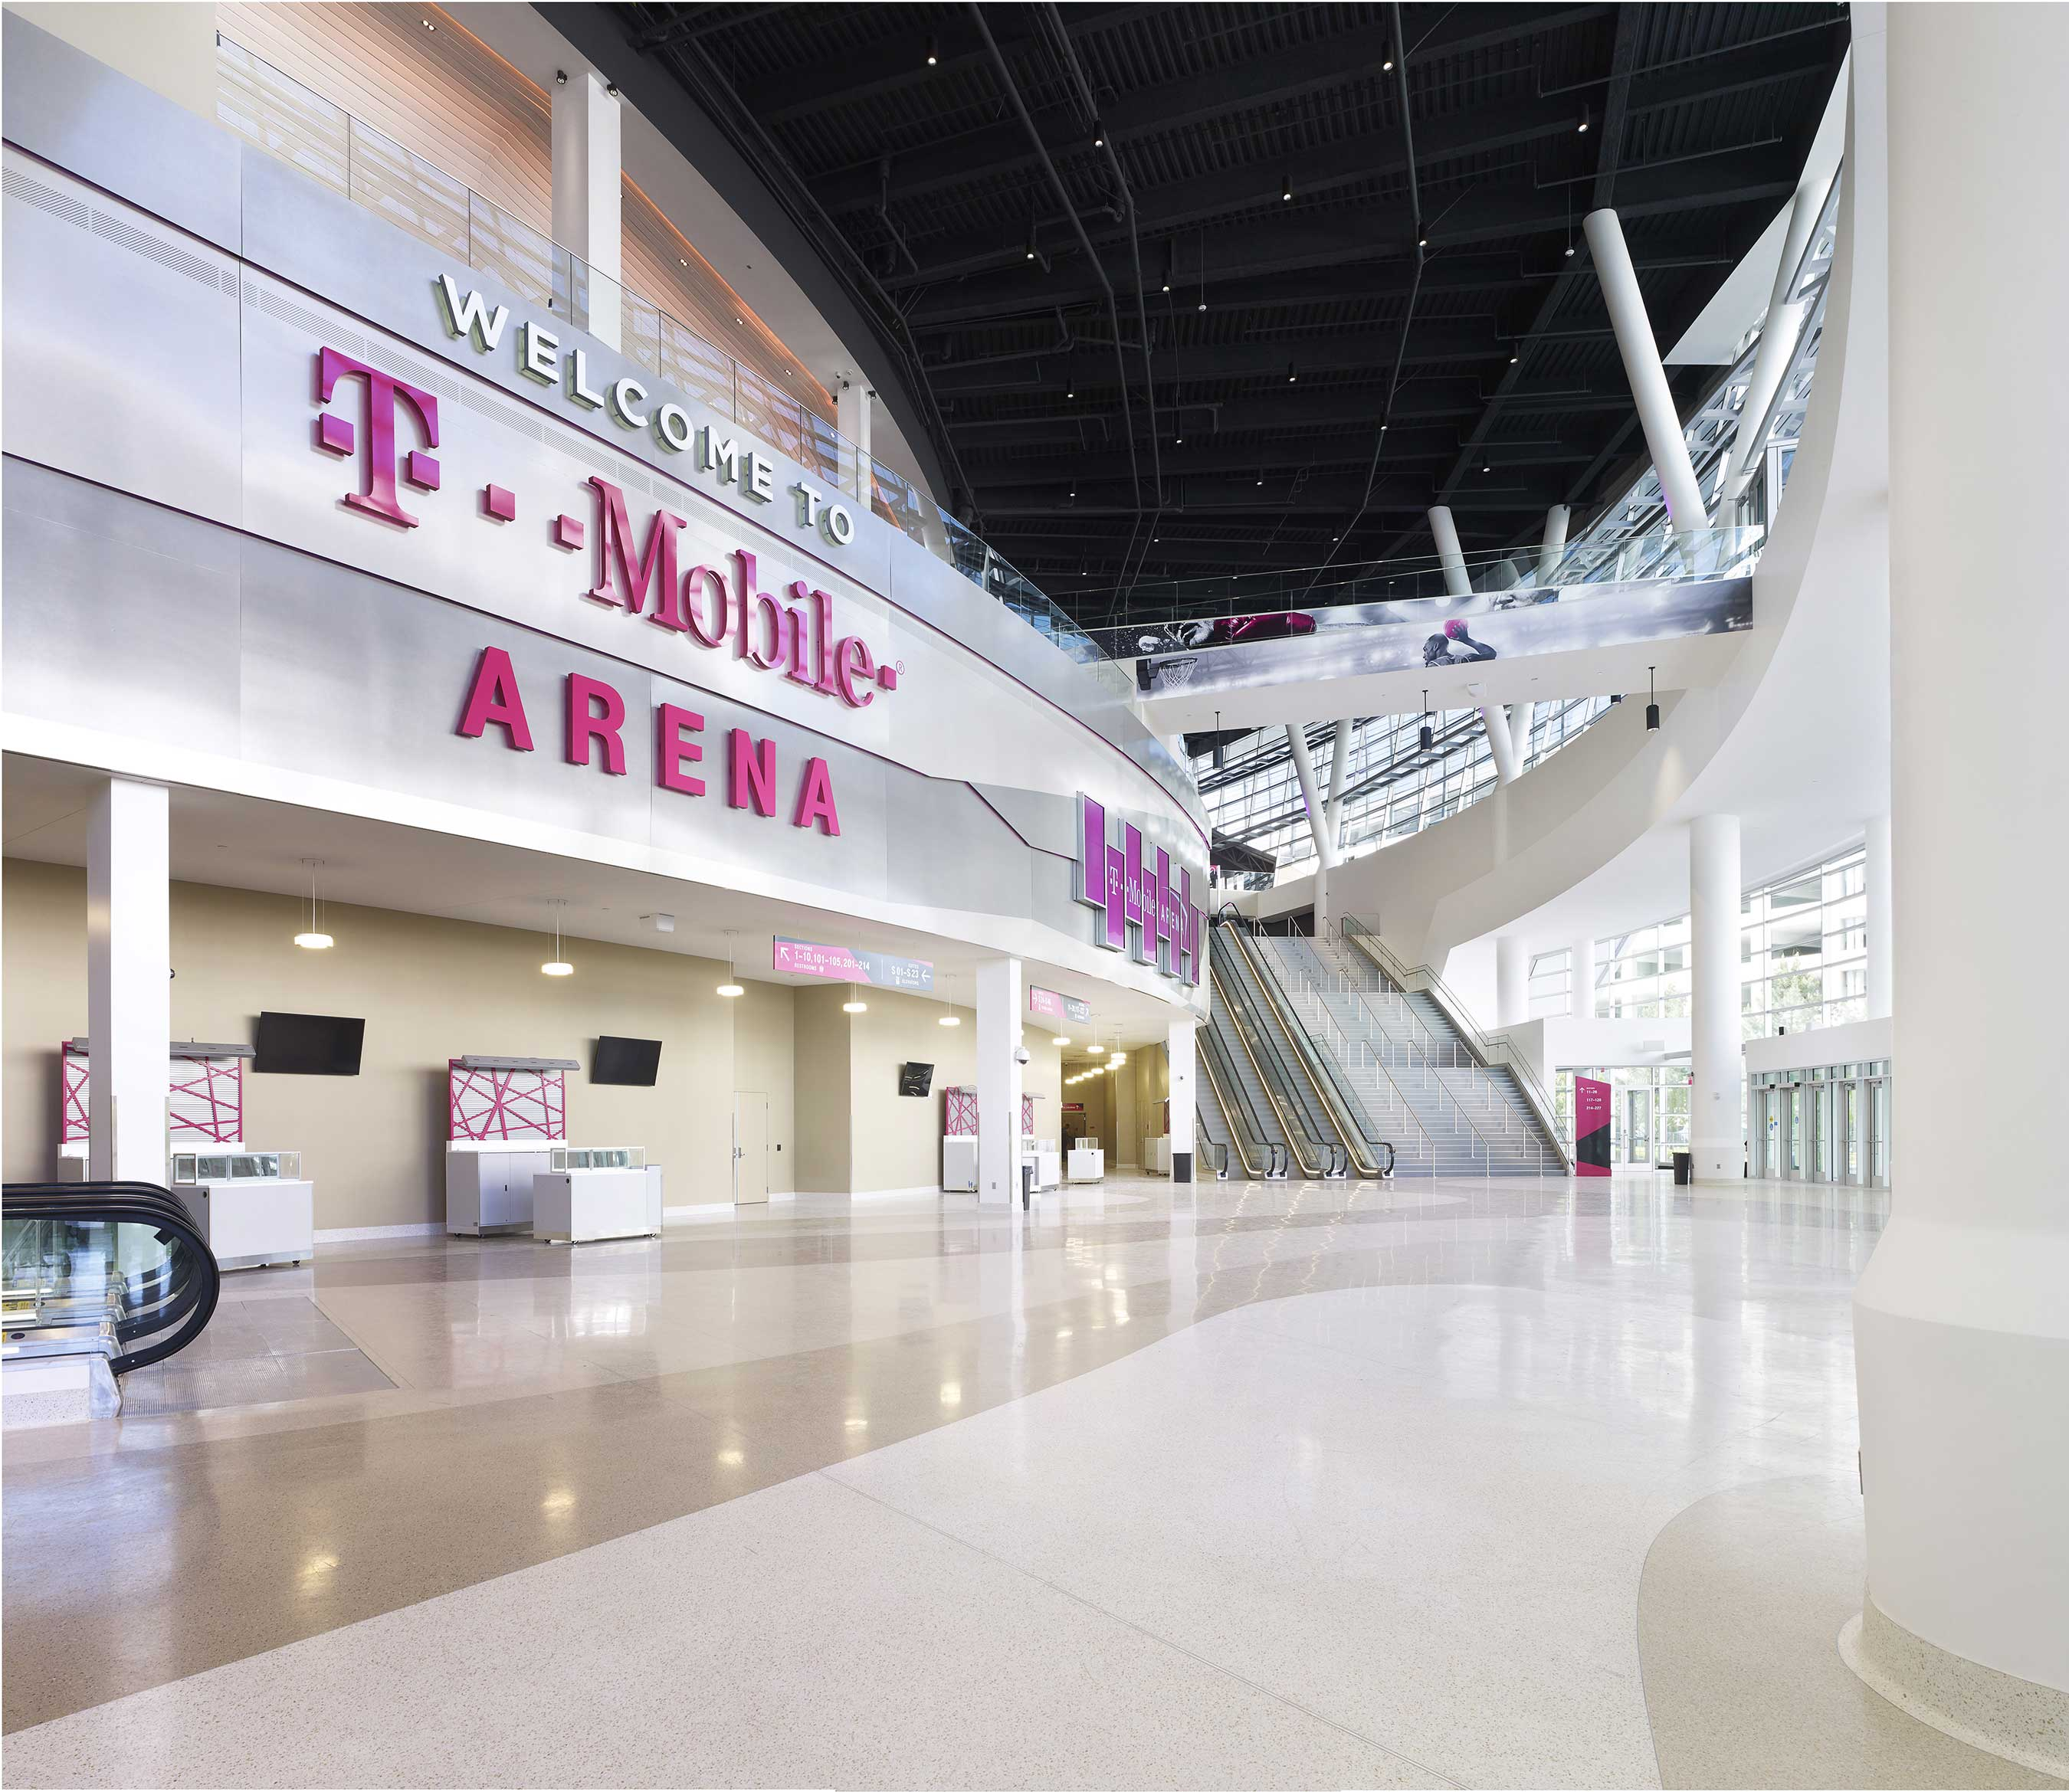 The T-Mobile Arena can host 20,000 fans for events including all-star music headliners UFC, boxing, NHL and NBA games, awards shows and more.